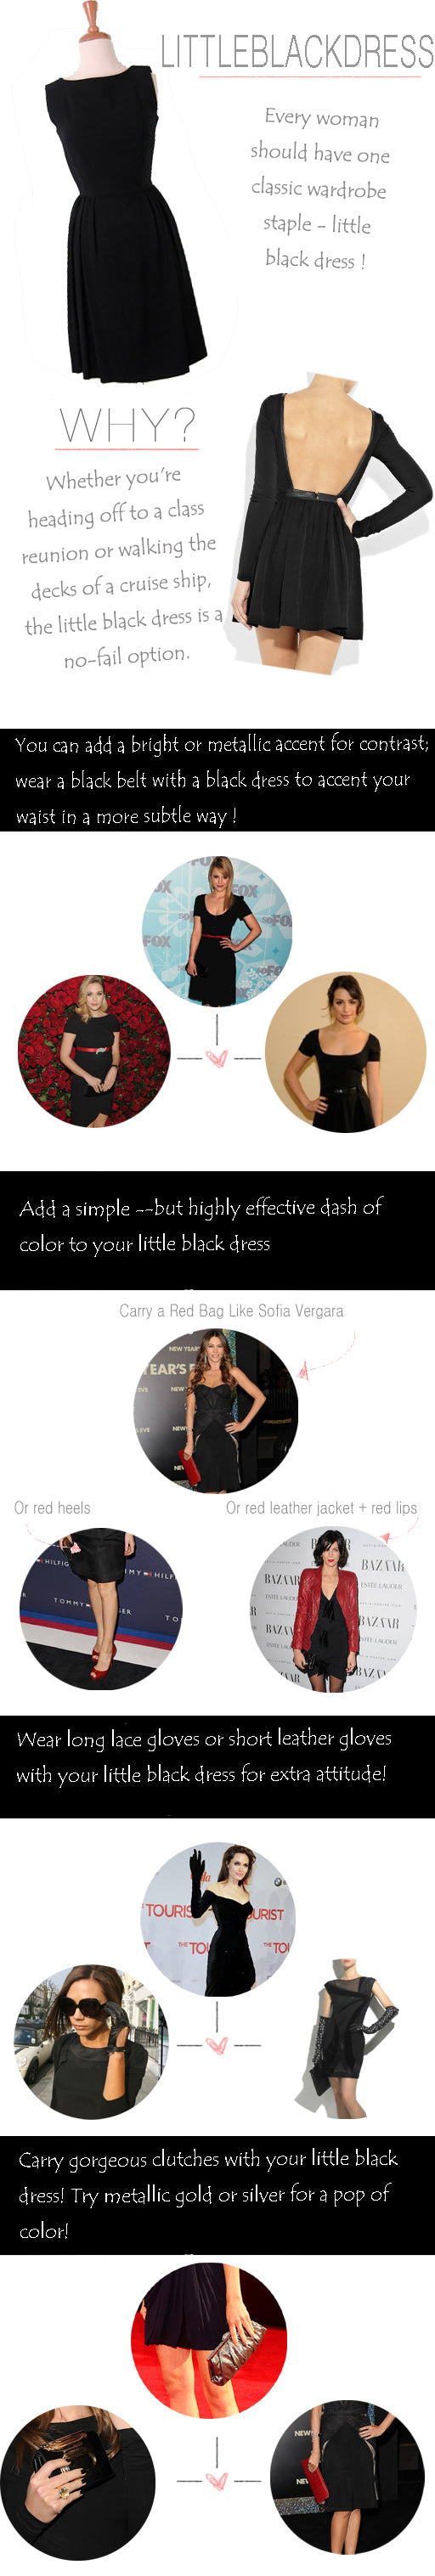 little black dress tips